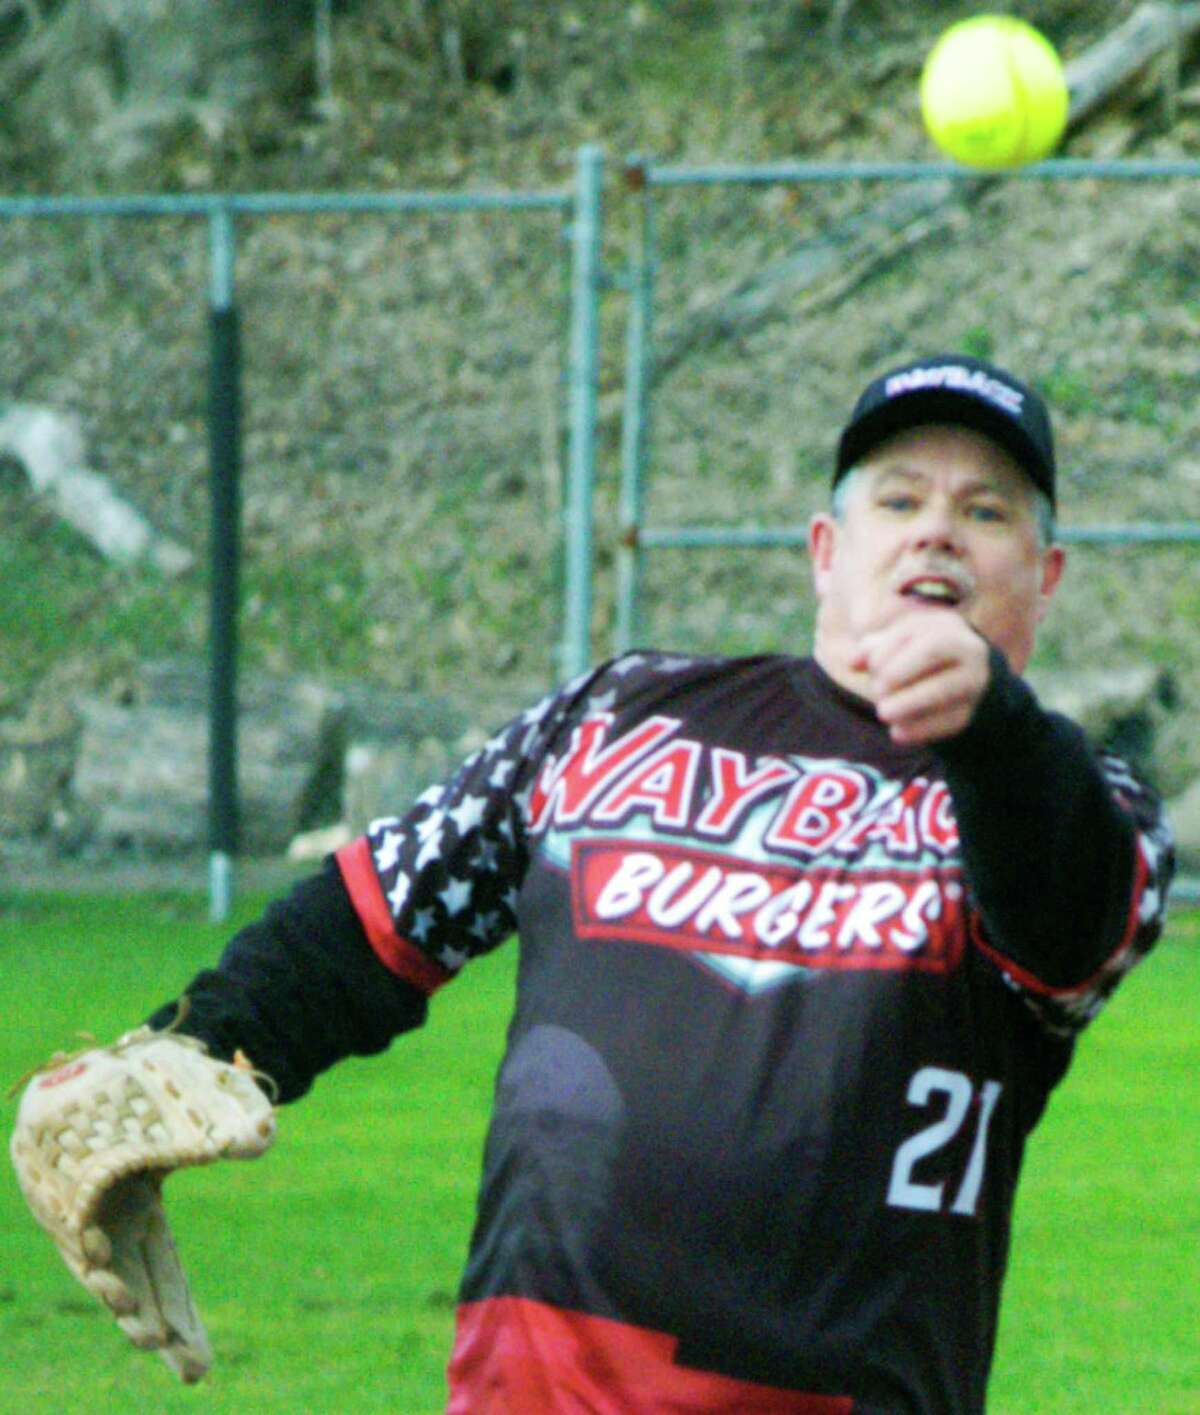 Veteran southpaw pitcher Bill Chemero of Wayback Burgers delivers the season's first pitch at Young's Field to open the 2015 New Milford Parks & Recreation adult softball season. April 23, 2015